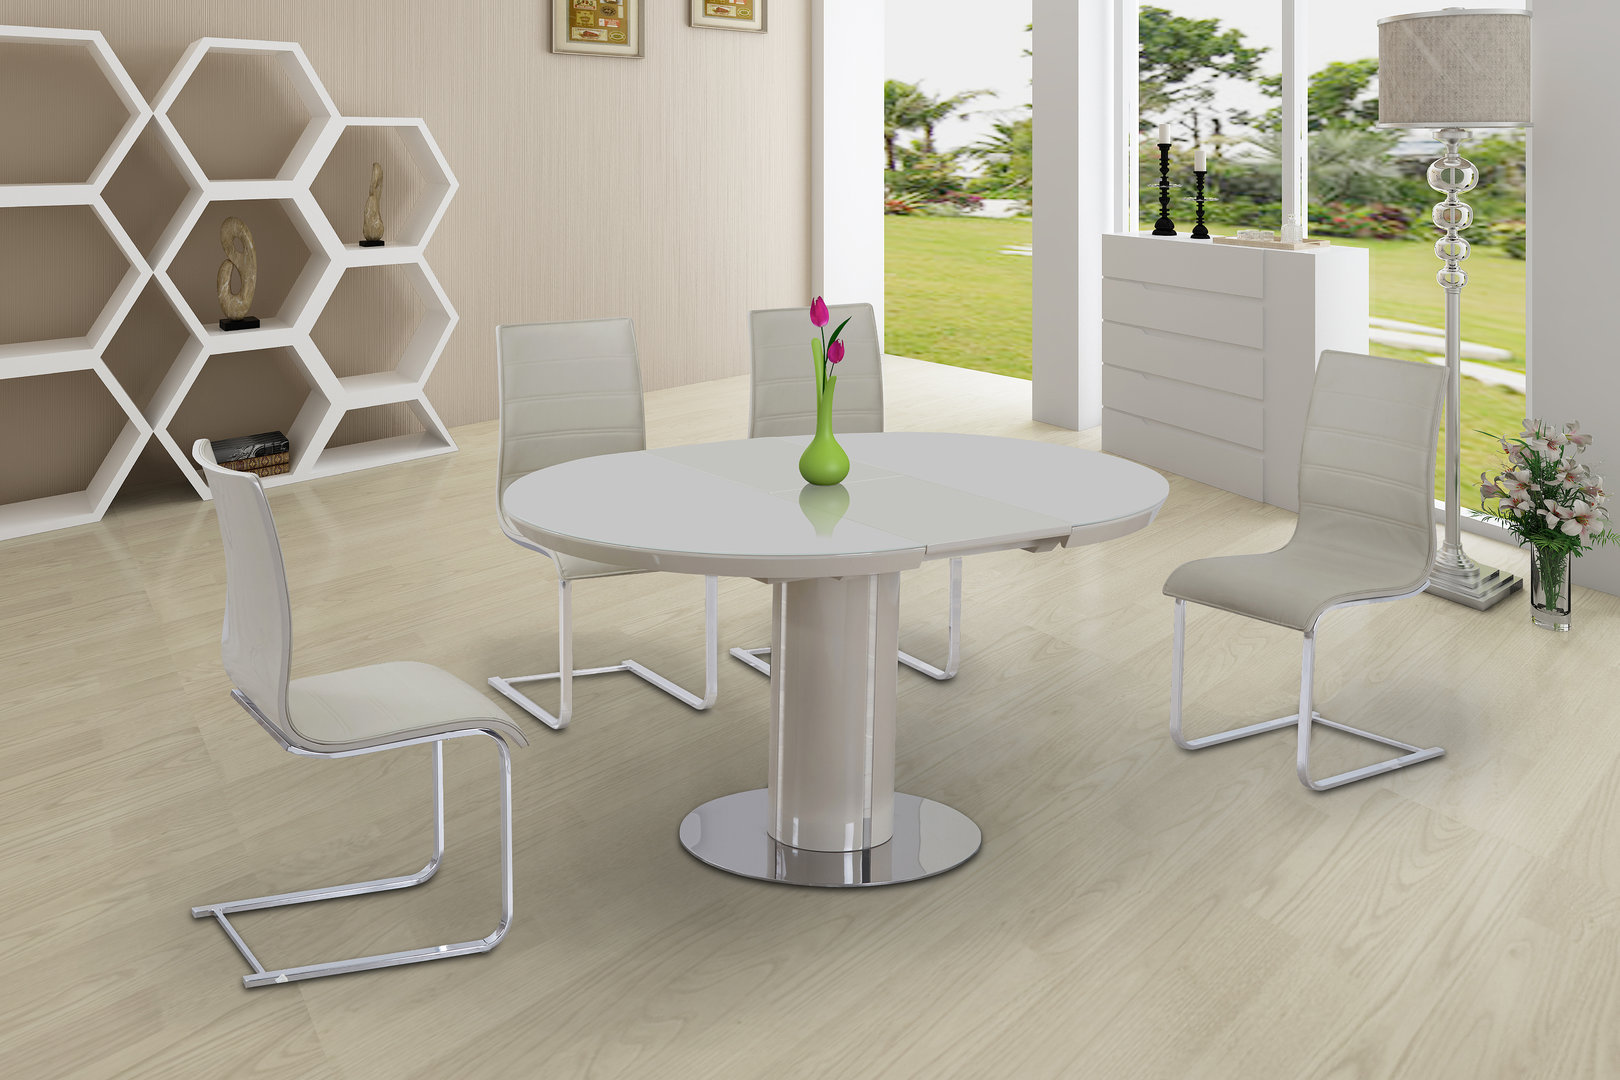 Round cream glass high gloss dining table 6 chairs for Round dining table for 6